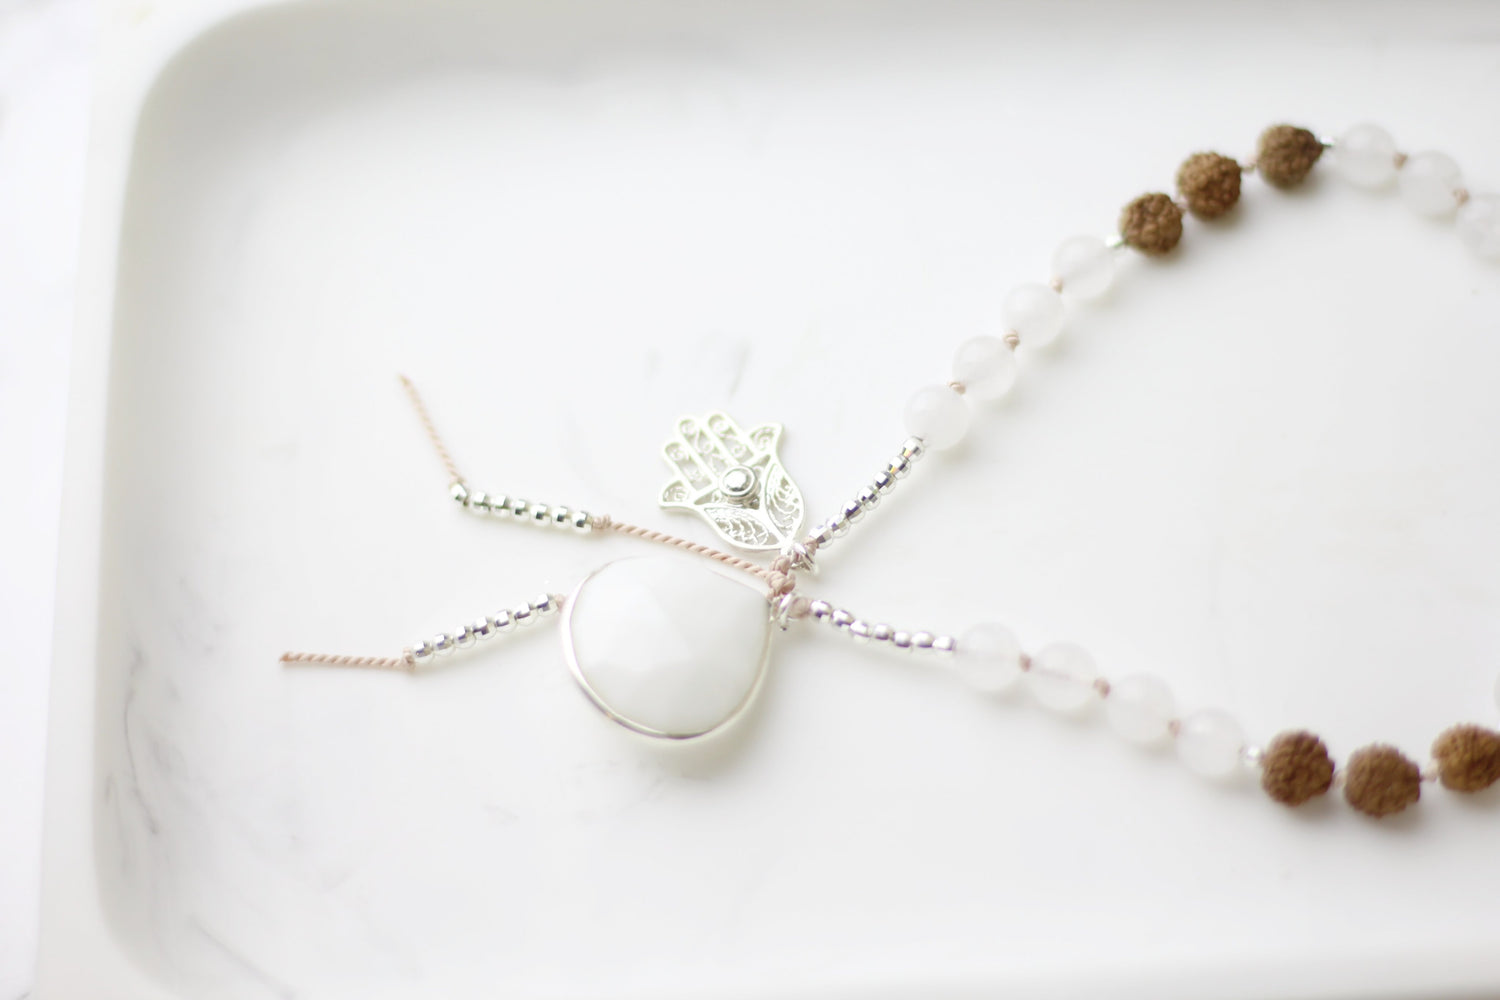 Serenity Mala Necklace